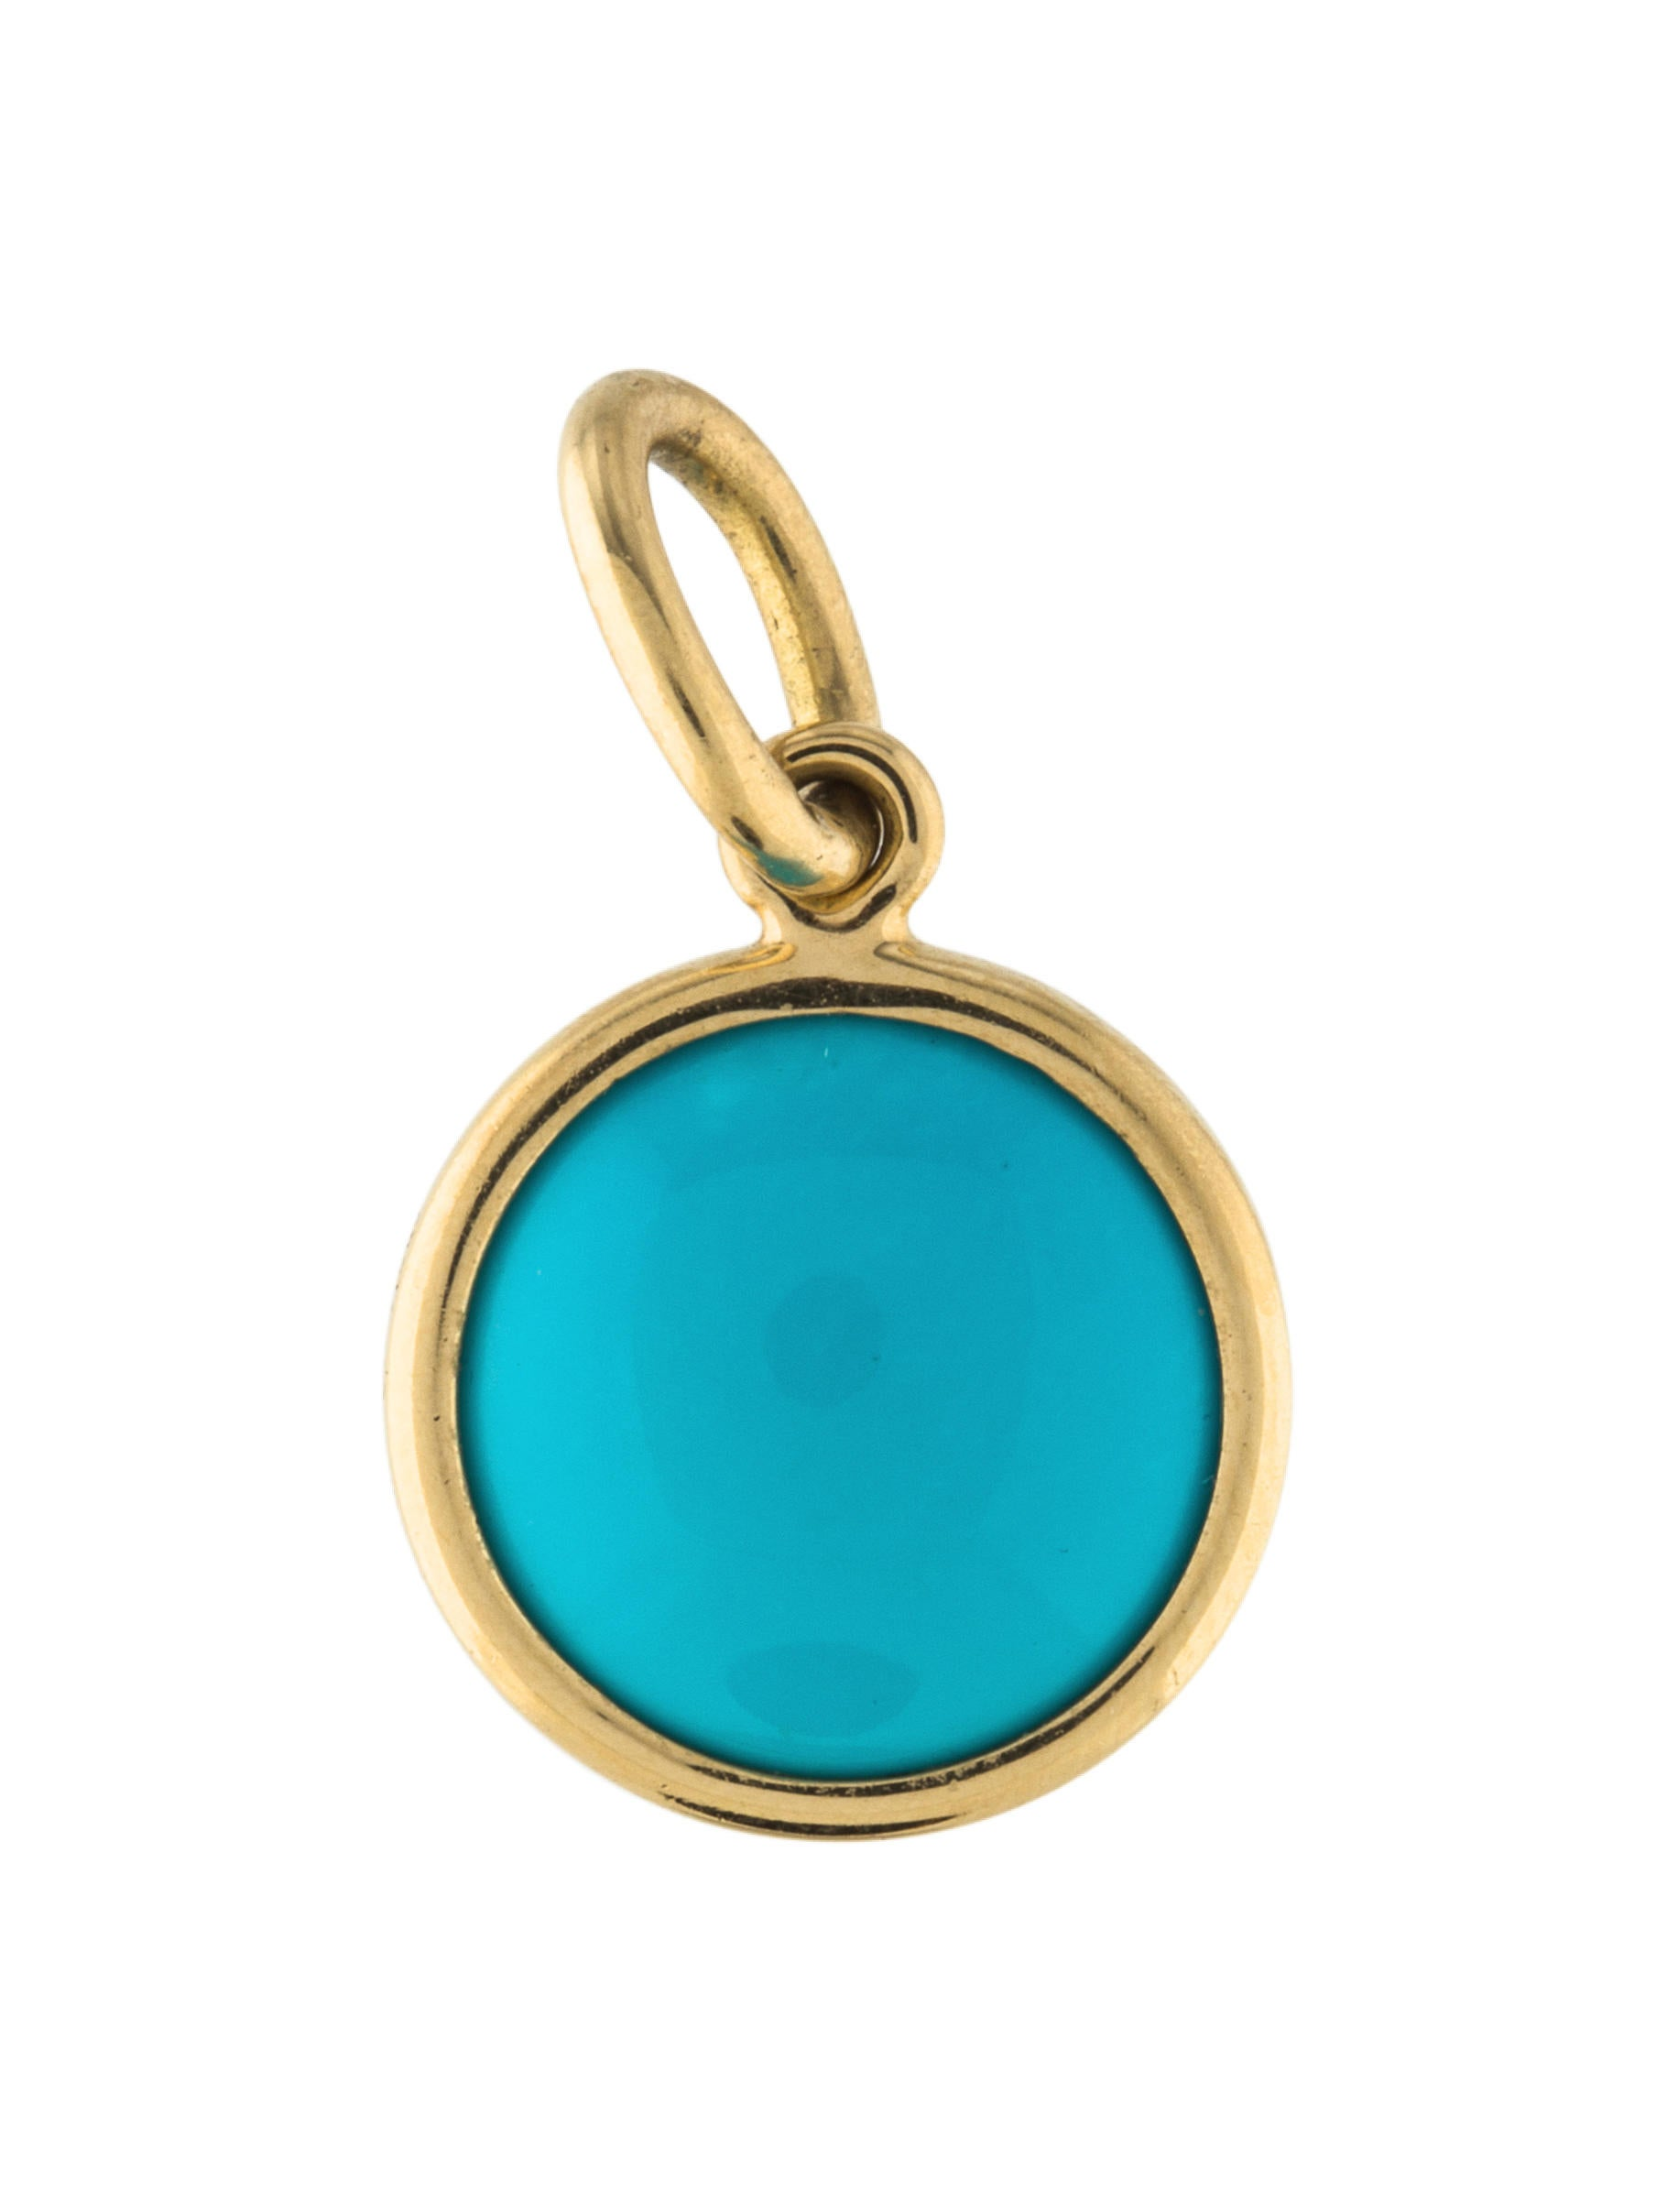 51c020c64 Tiffany & Co. 18K Turquoise Dot Charm - Charms - TIF68023   The RealReal